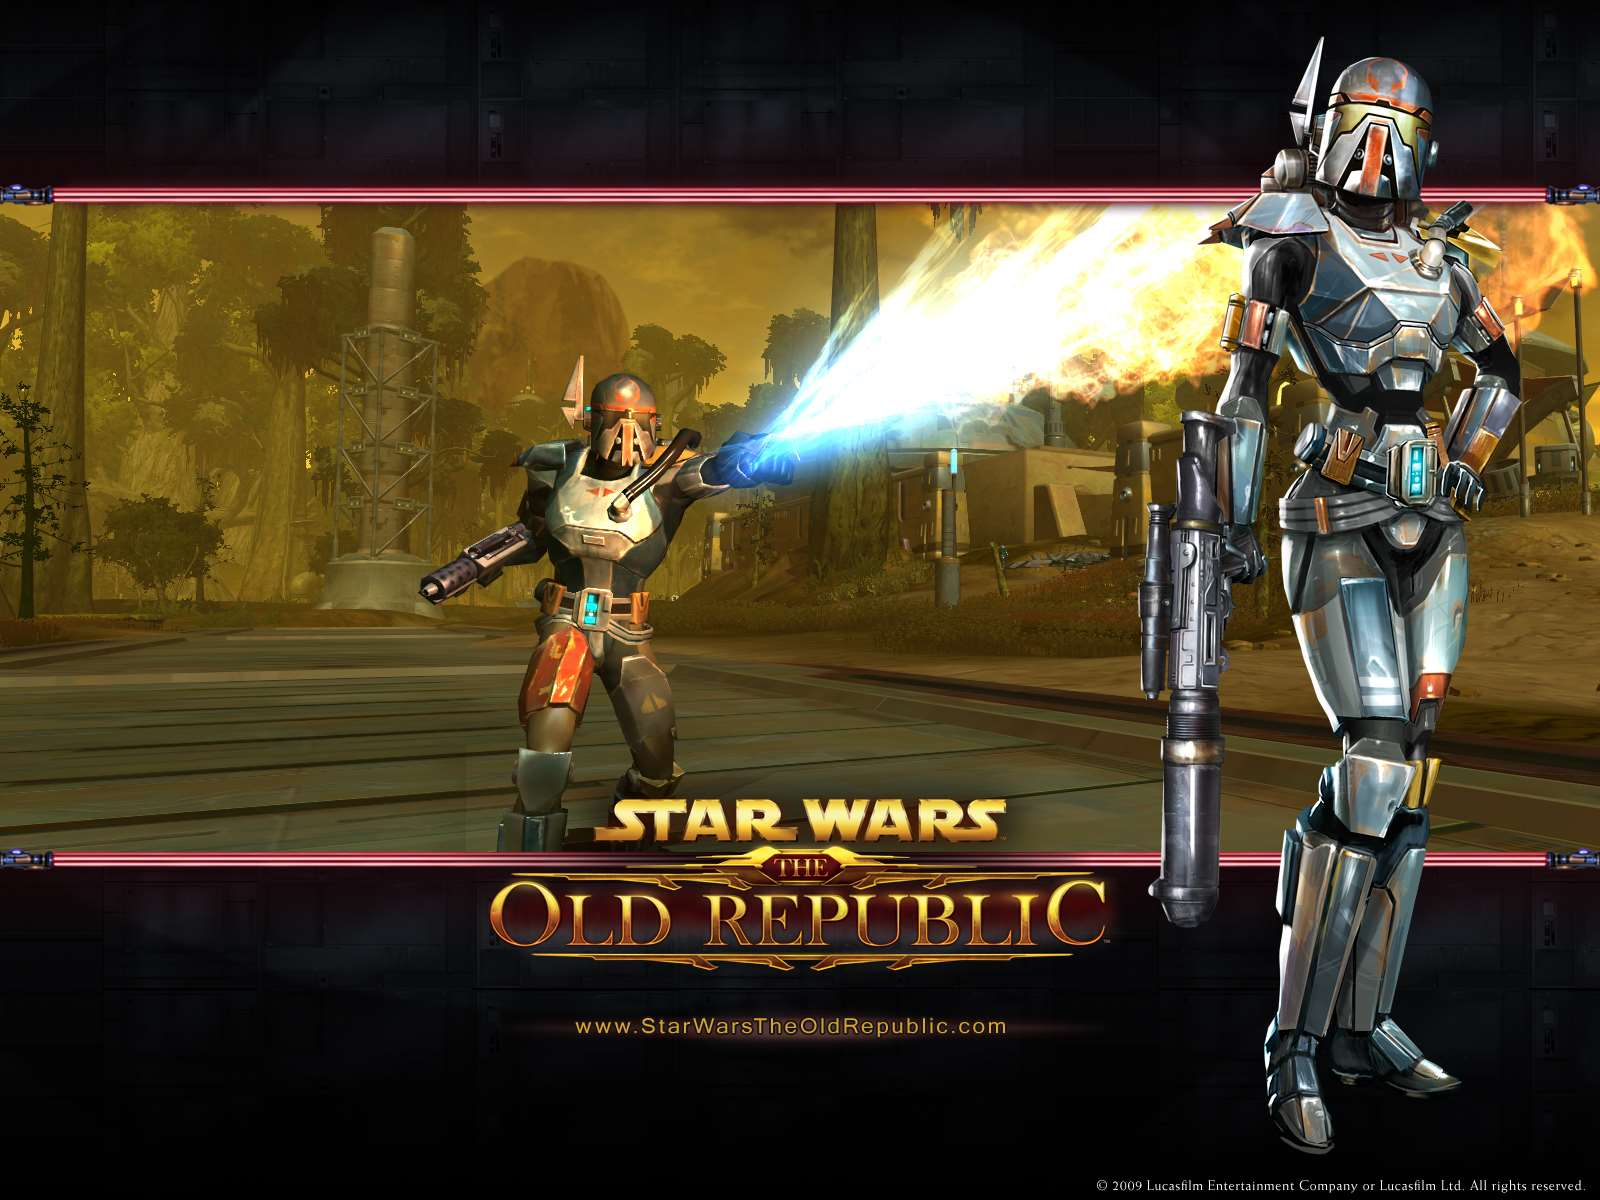 Star Wars The Old Republic Official Star Wars The Old Republic Wallpaper Bounty Hunter 2 Wallpaper Star Wars The Old Republic Official Star Wars The Old Republic Wallpaper Bounty Hunter 2 Backgrounds